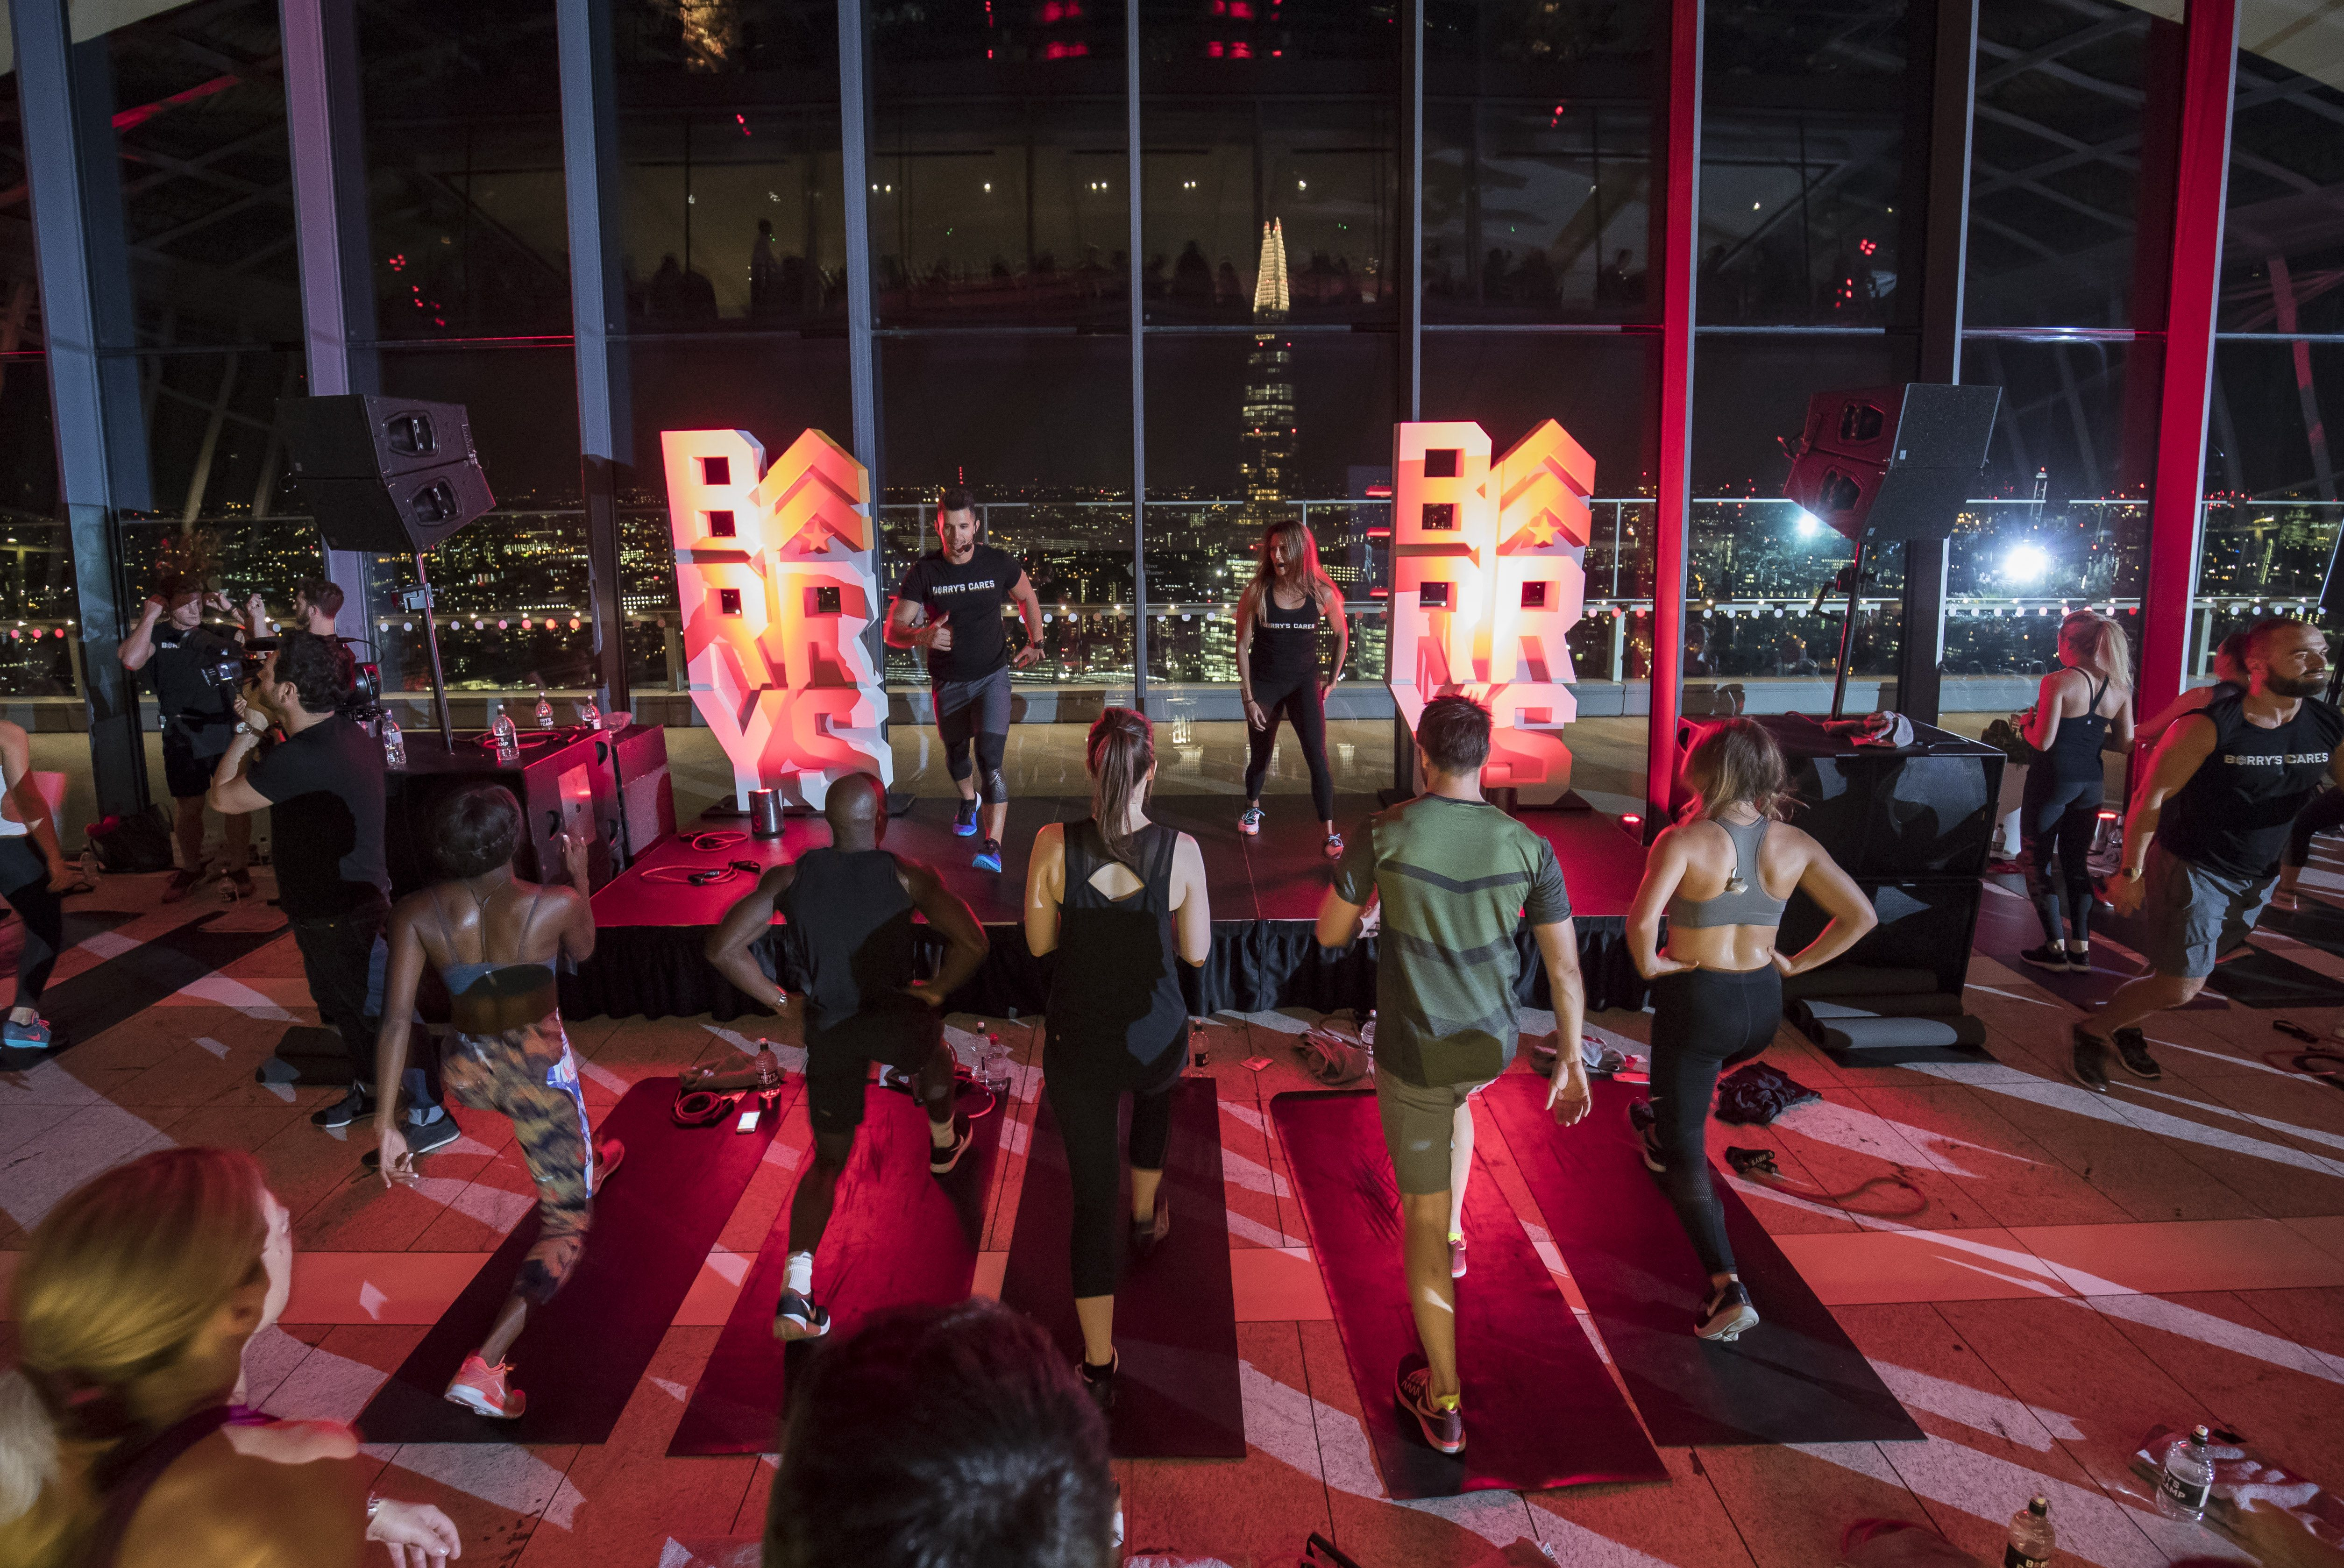 Barry's Bootcamp London Sky Garden participants following instructors doing fitness moves on stage